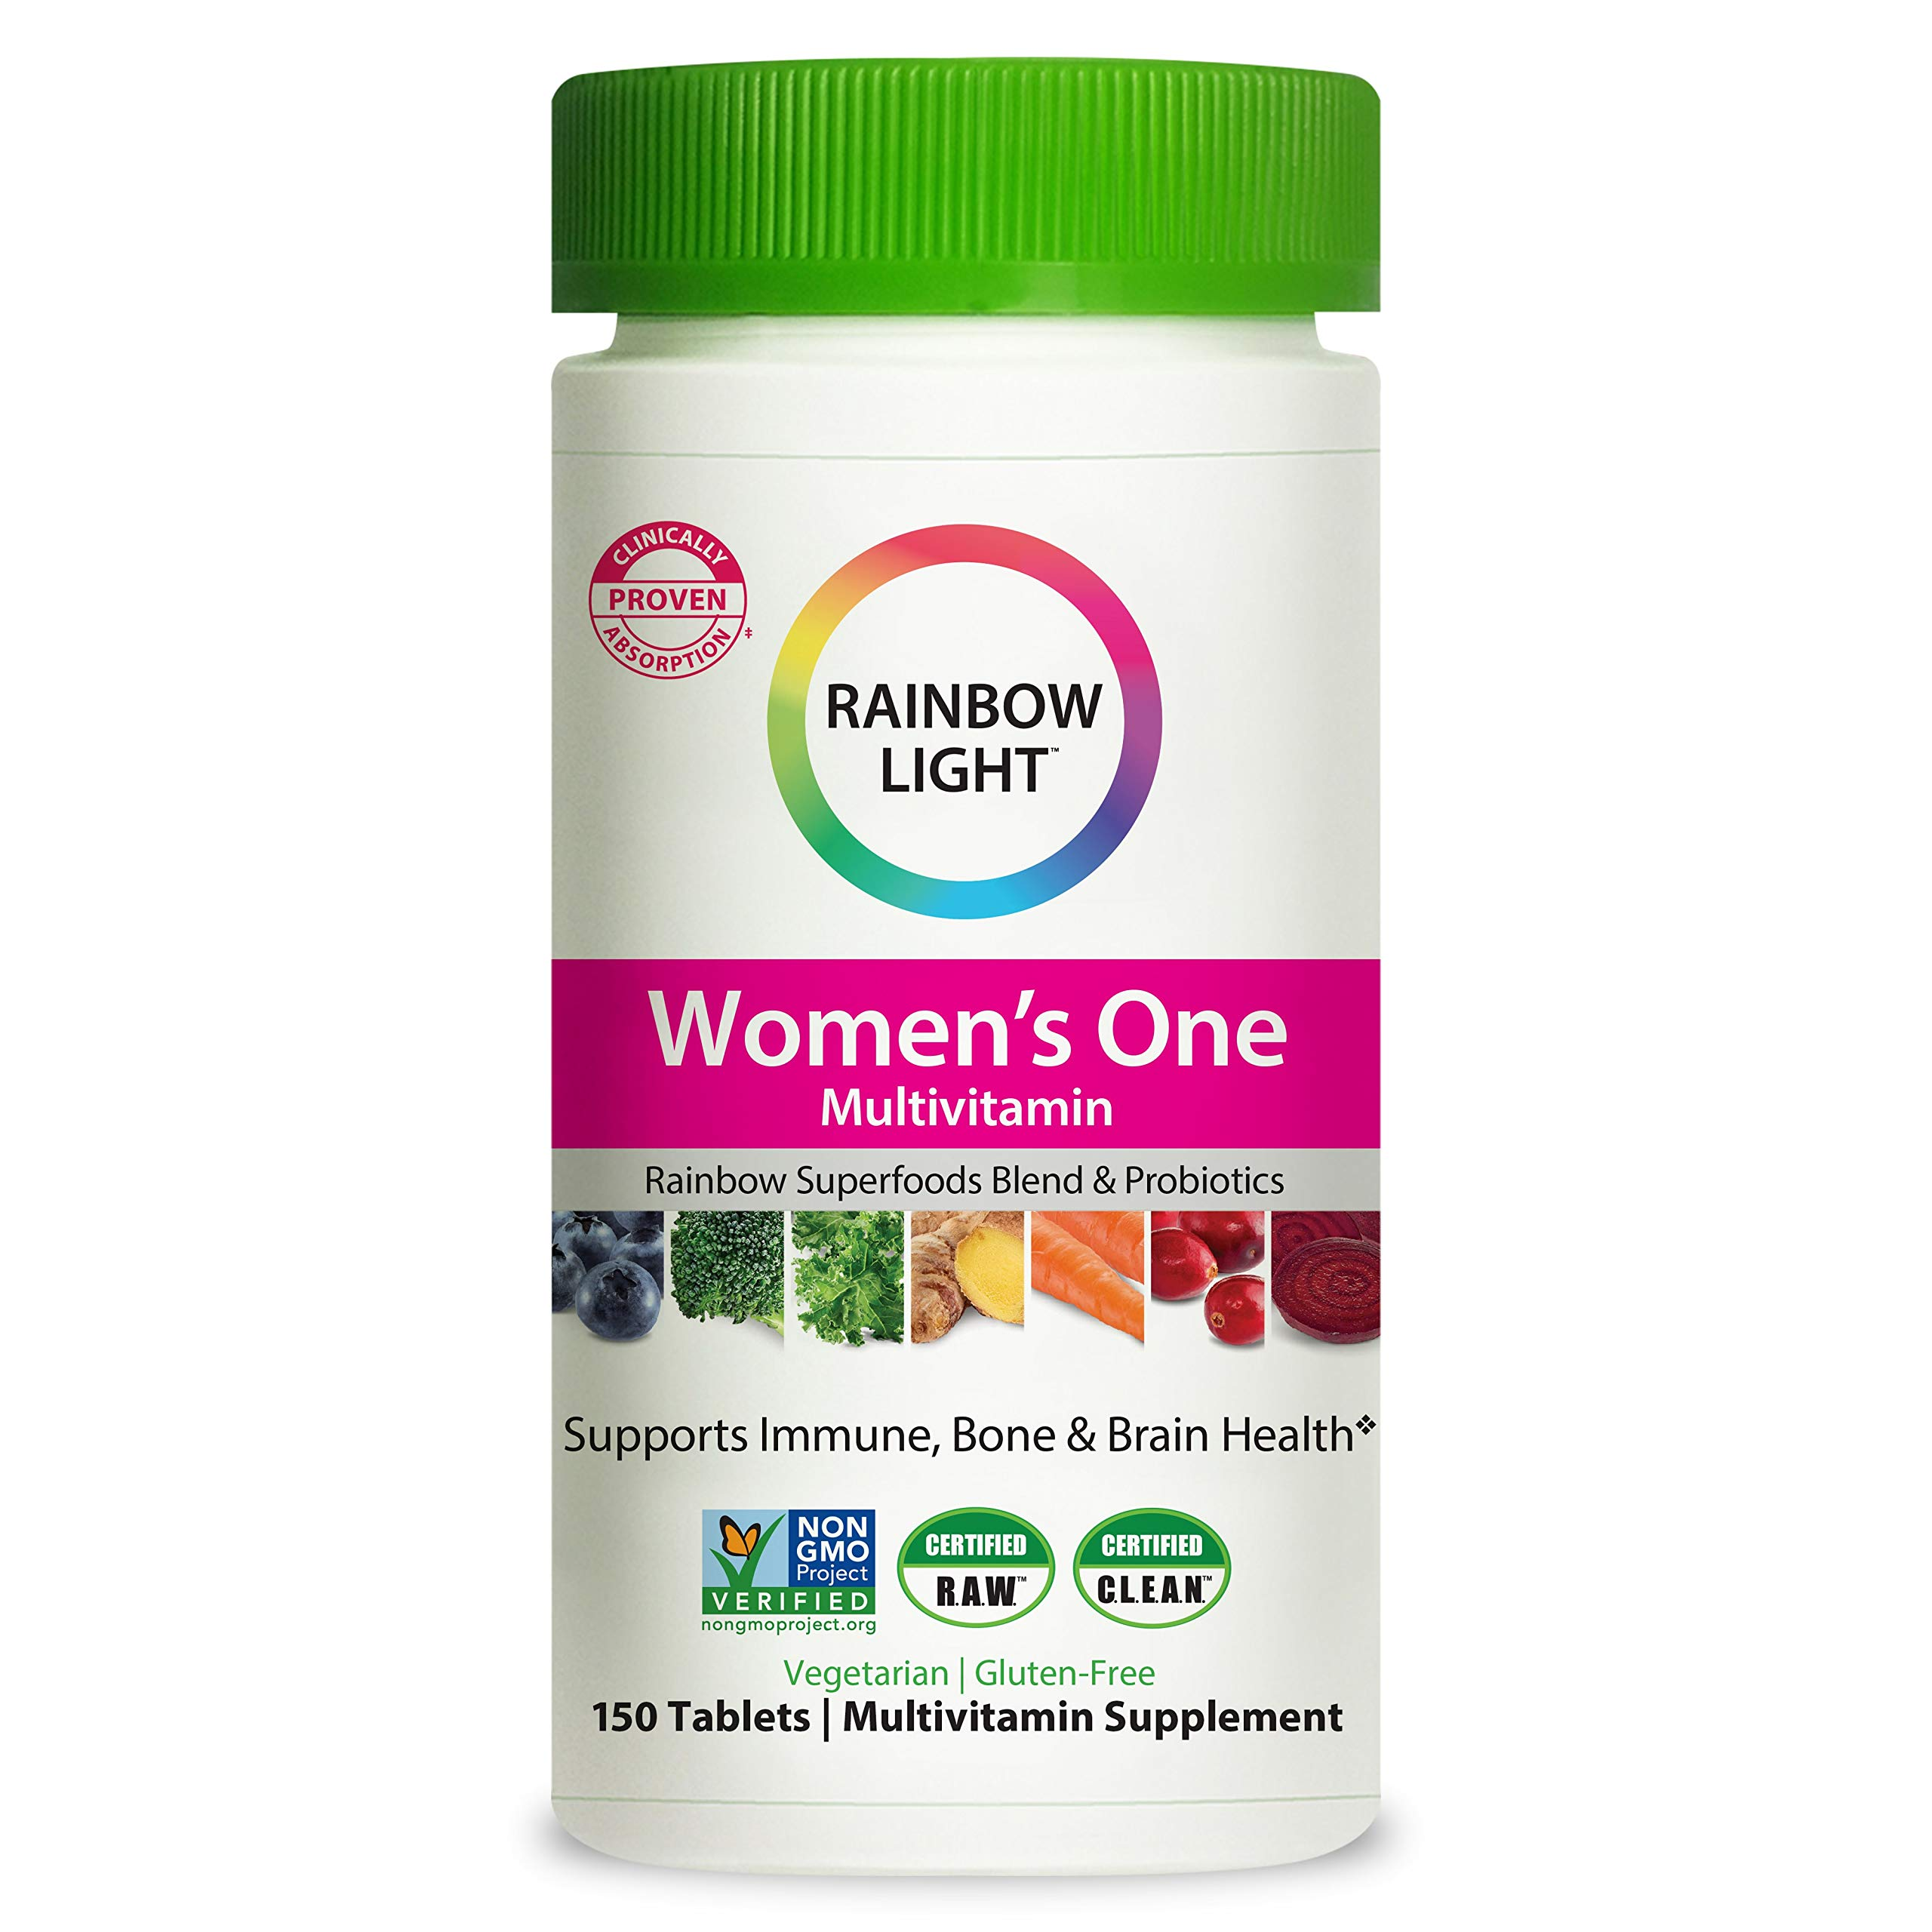 Rainbow Light Women's One Multivitamin for Women with Vitamin C, Vitamin D, & Zinc for Immune Support, Clinically Proven Absorption of 7 Key Nutrients, Non-GMO, Vegetarian & Gluten Free, 150 Tablets